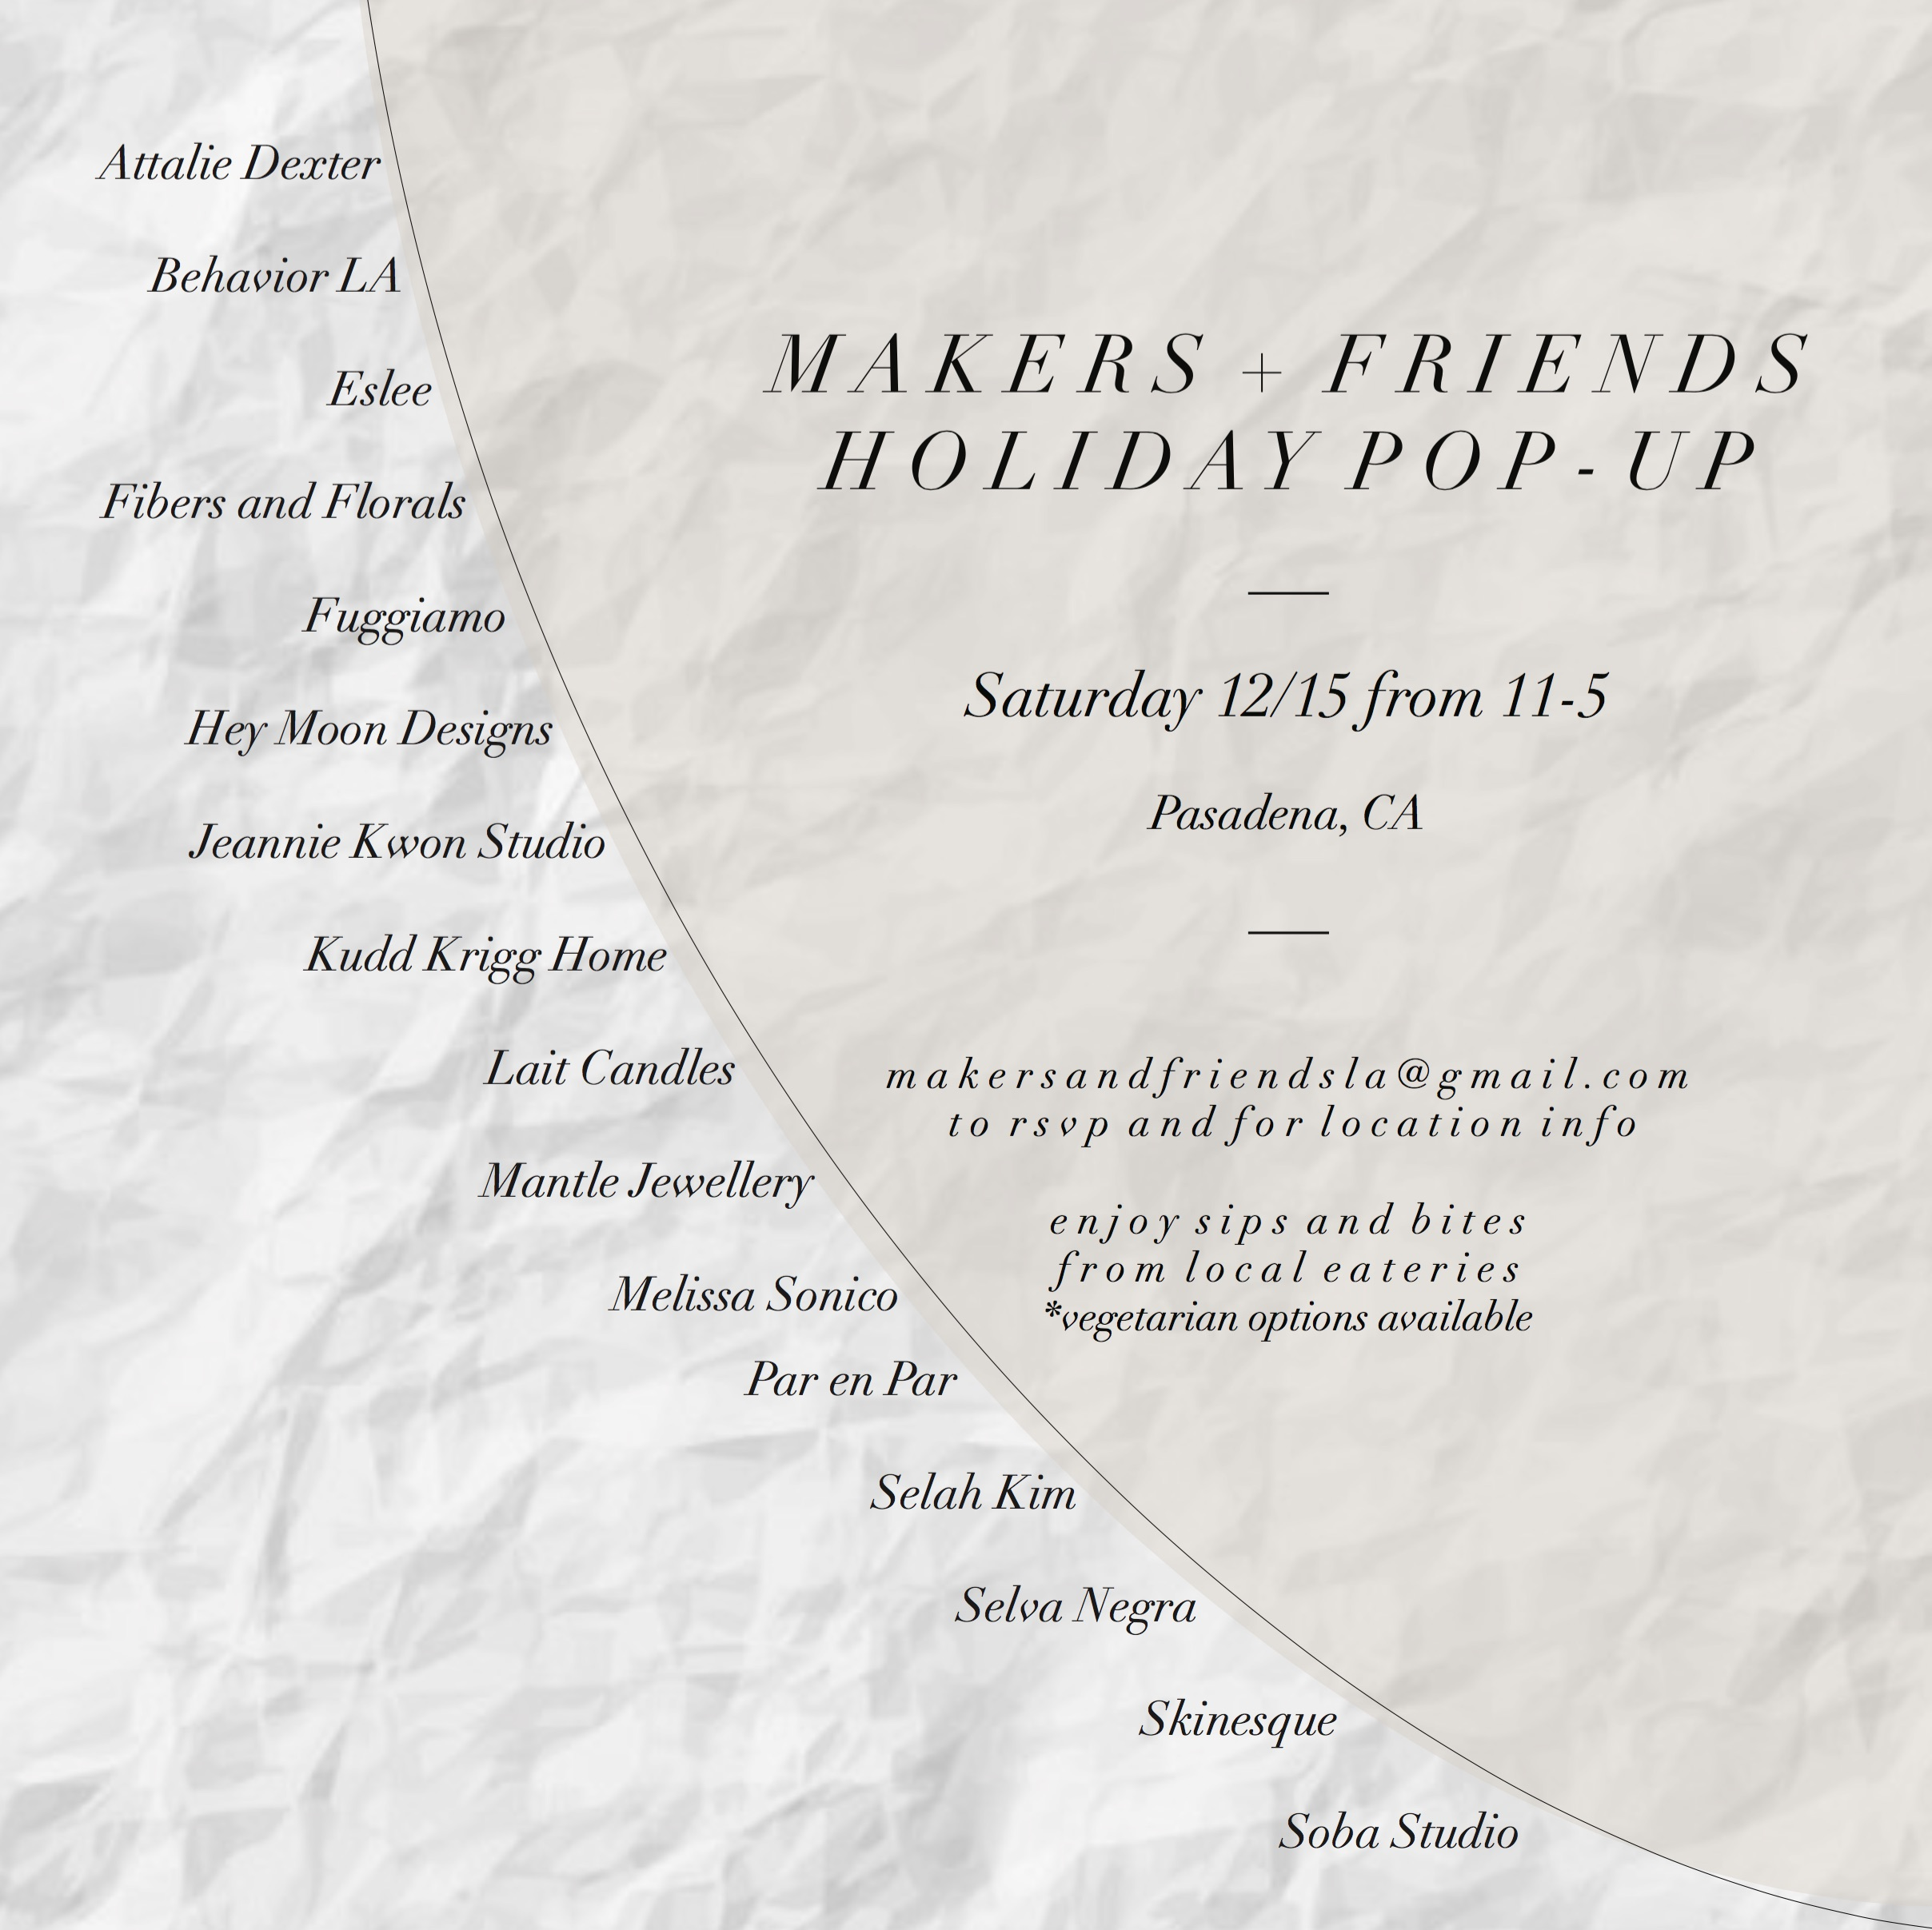 Makers + Friends flyer.jpg